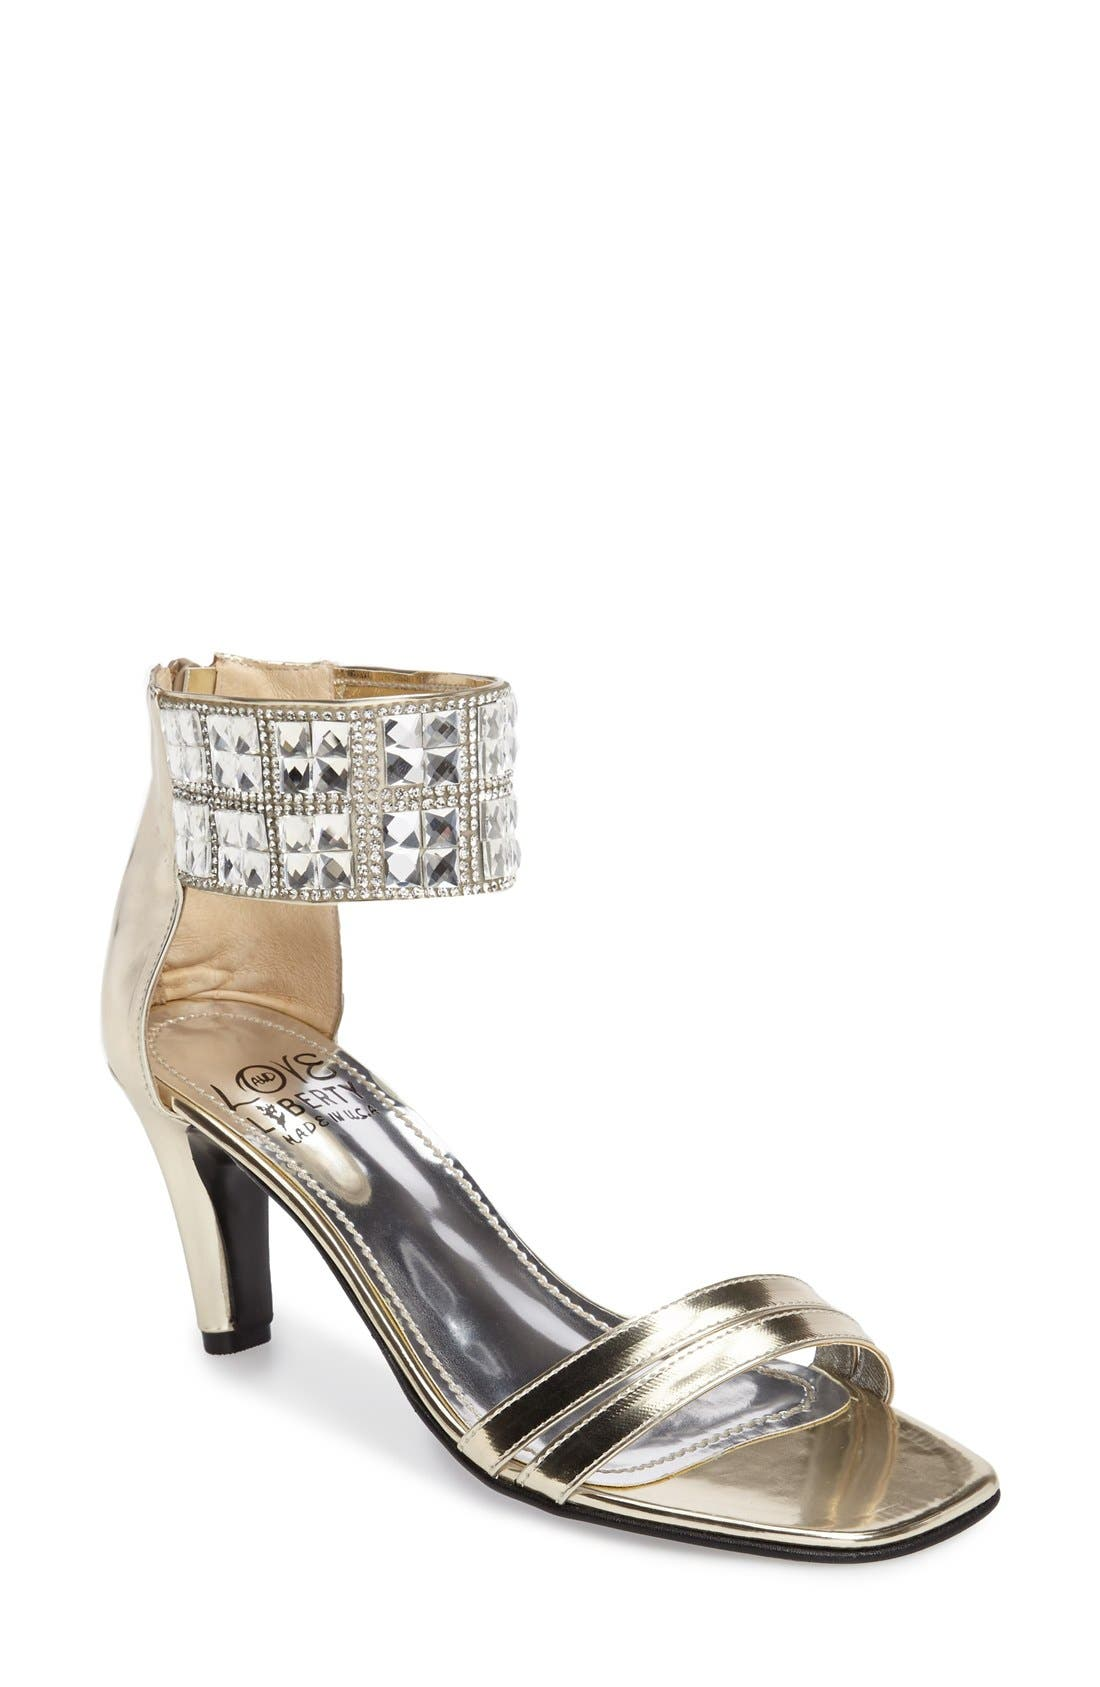 Scarlett Crystal Embellished Evening Sandal,                             Main thumbnail 1, color,                             Platinum Faux Leather